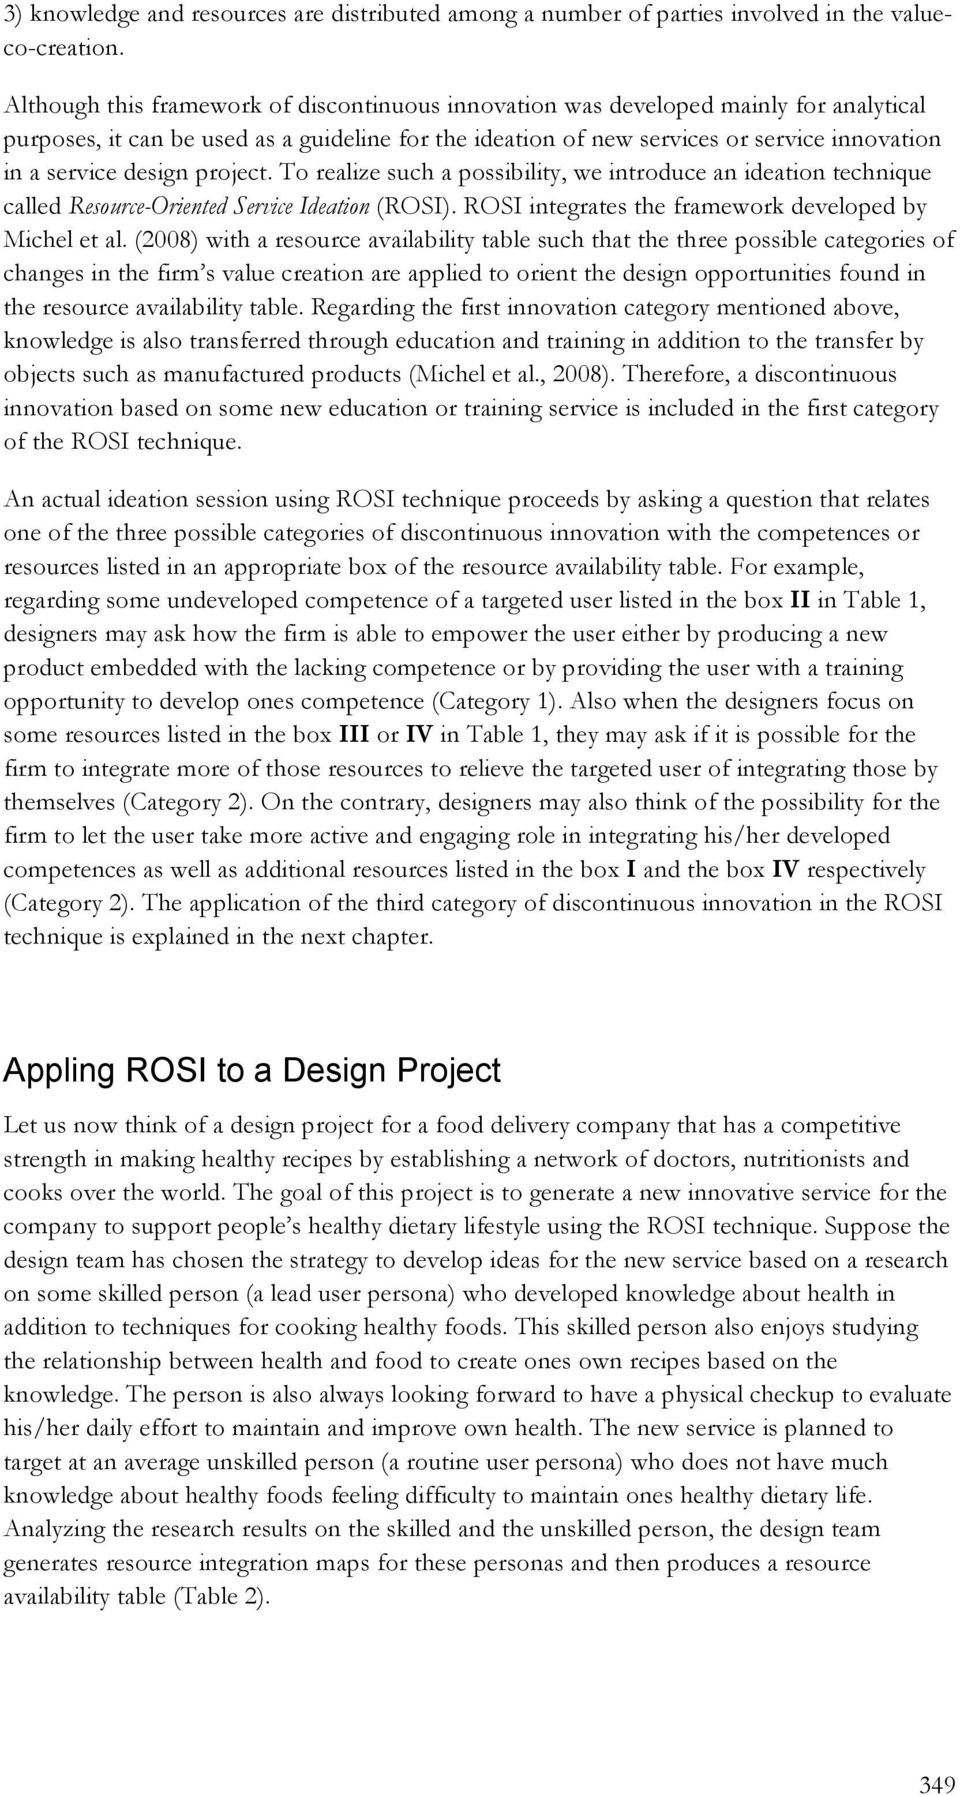 design project. To realize such a possibility, we introduce an ideation technique called Resource-Oriented Service Ideation (ROSI). ROSI integrates the framework developed by Michel et al.